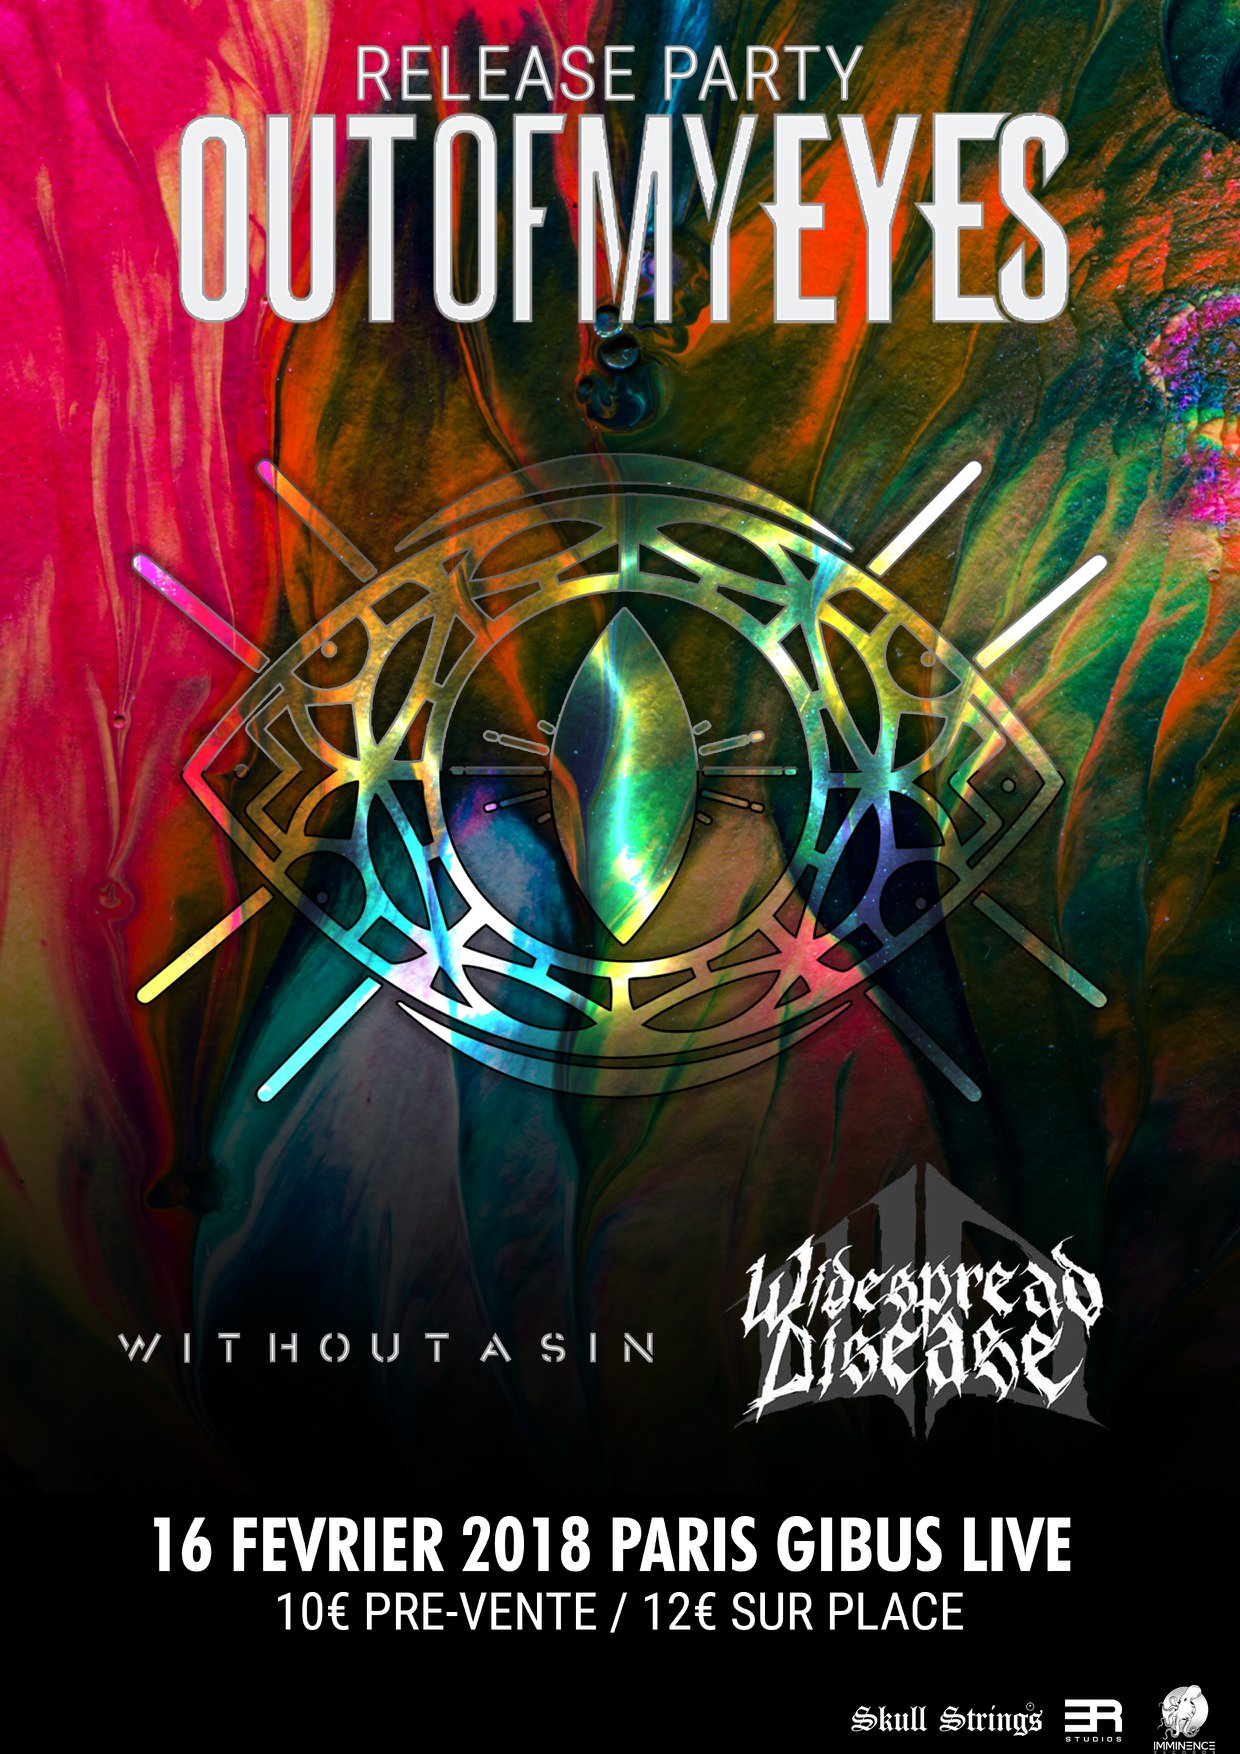 Out Of My Eyes + Widespread Disease + Without A Sin